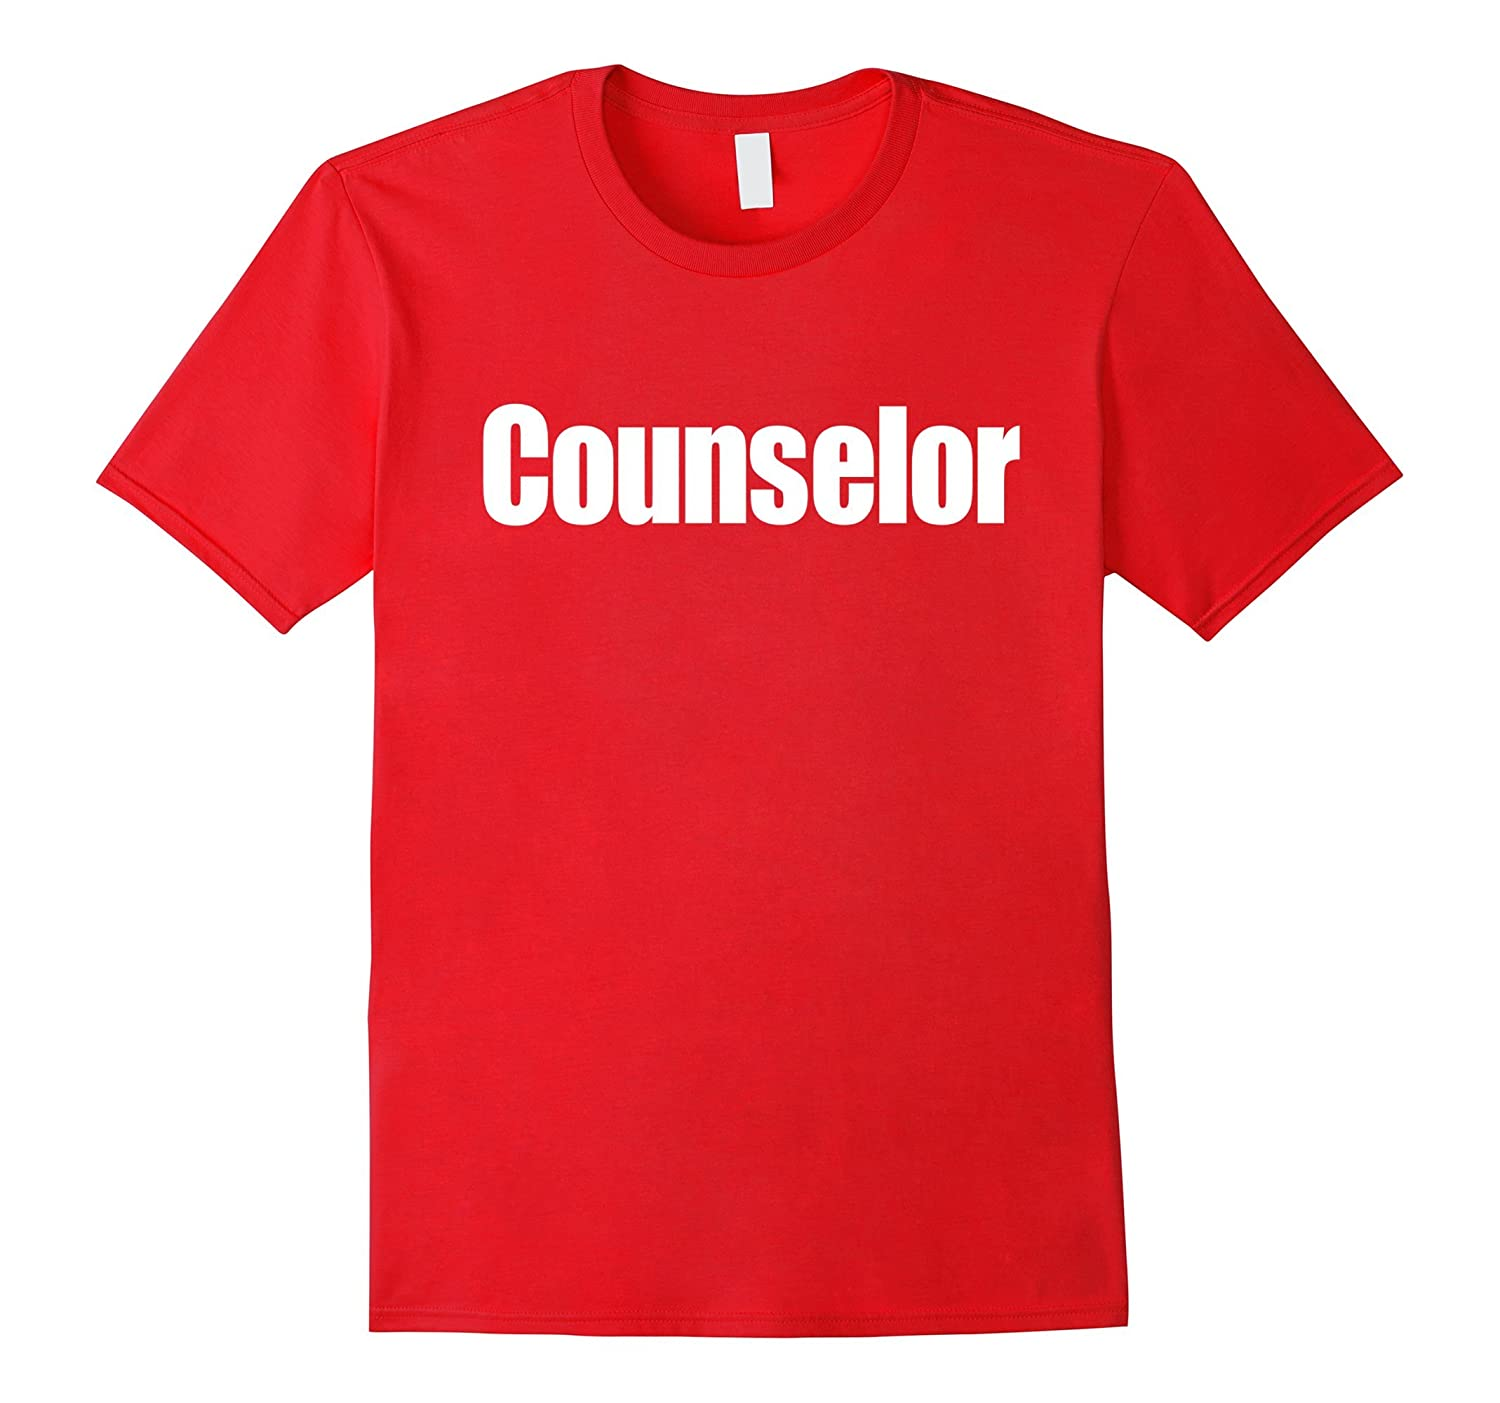 Counselor T-Shirt in white text-TJ